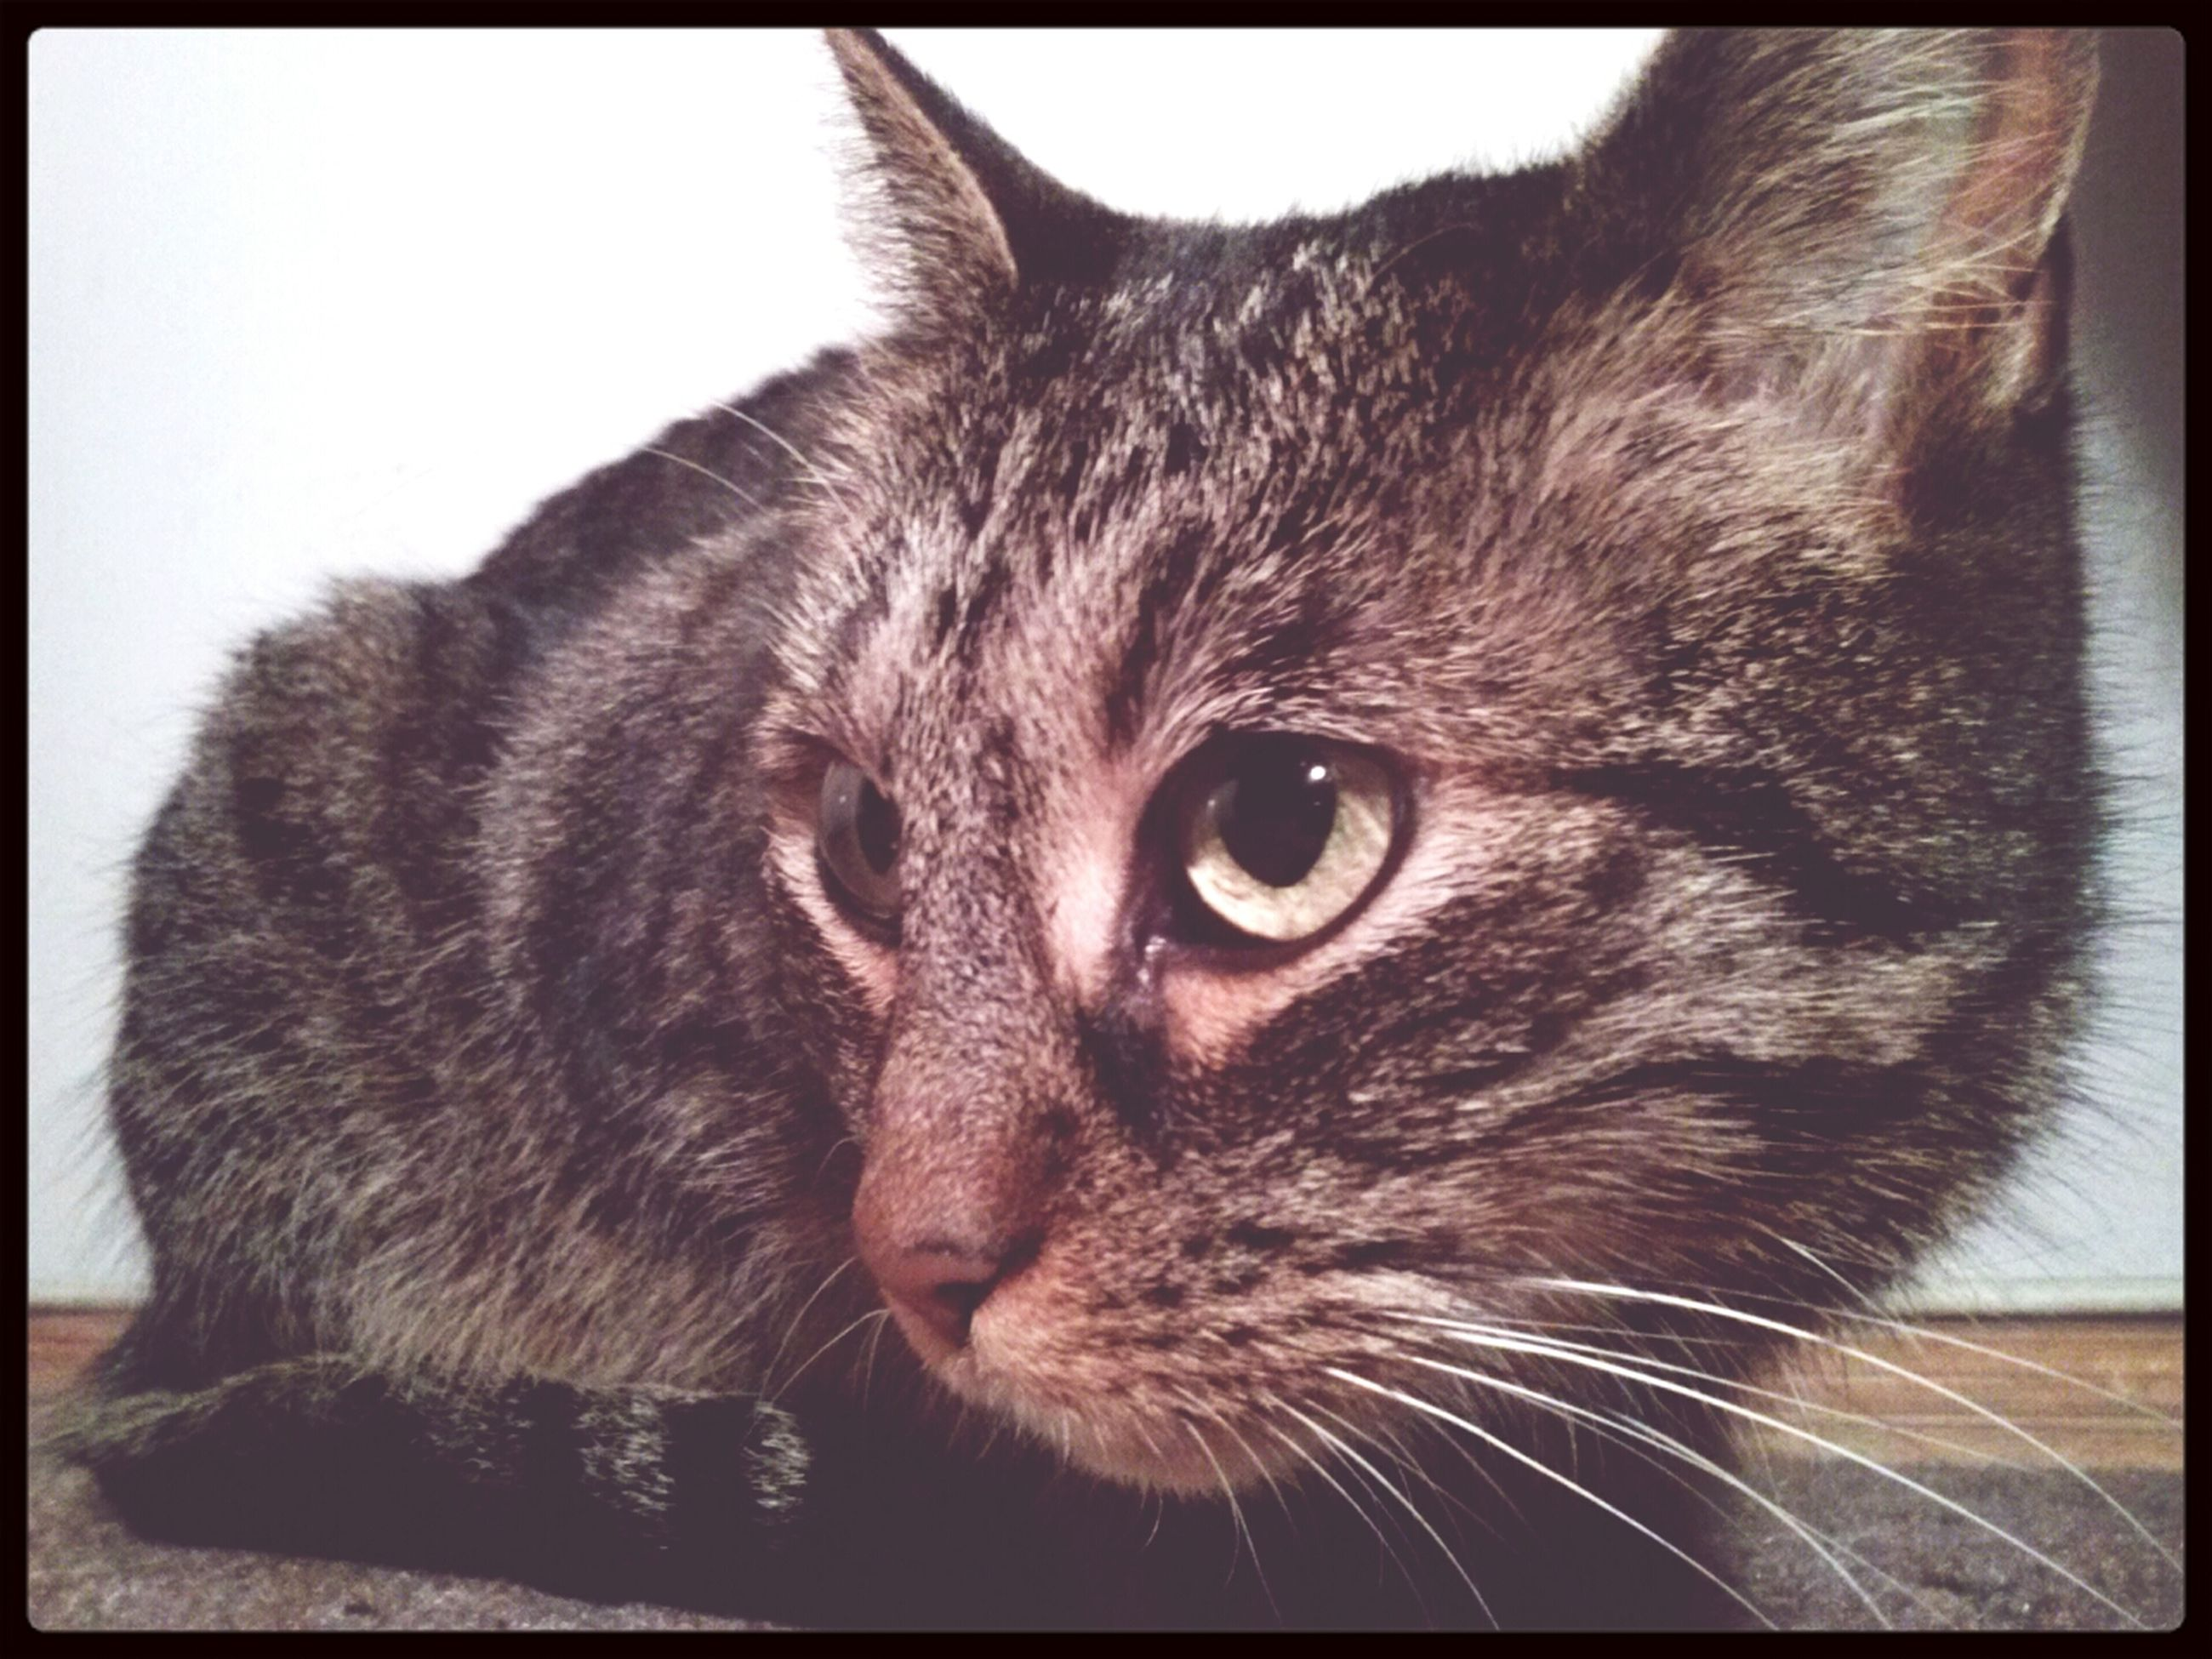 domestic cat, one animal, pets, cat, domestic animals, animal themes, transfer print, feline, mammal, whisker, auto post production filter, indoors, close-up, animal head, animal eye, staring, portrait, alertness, looking at camera, animal body part